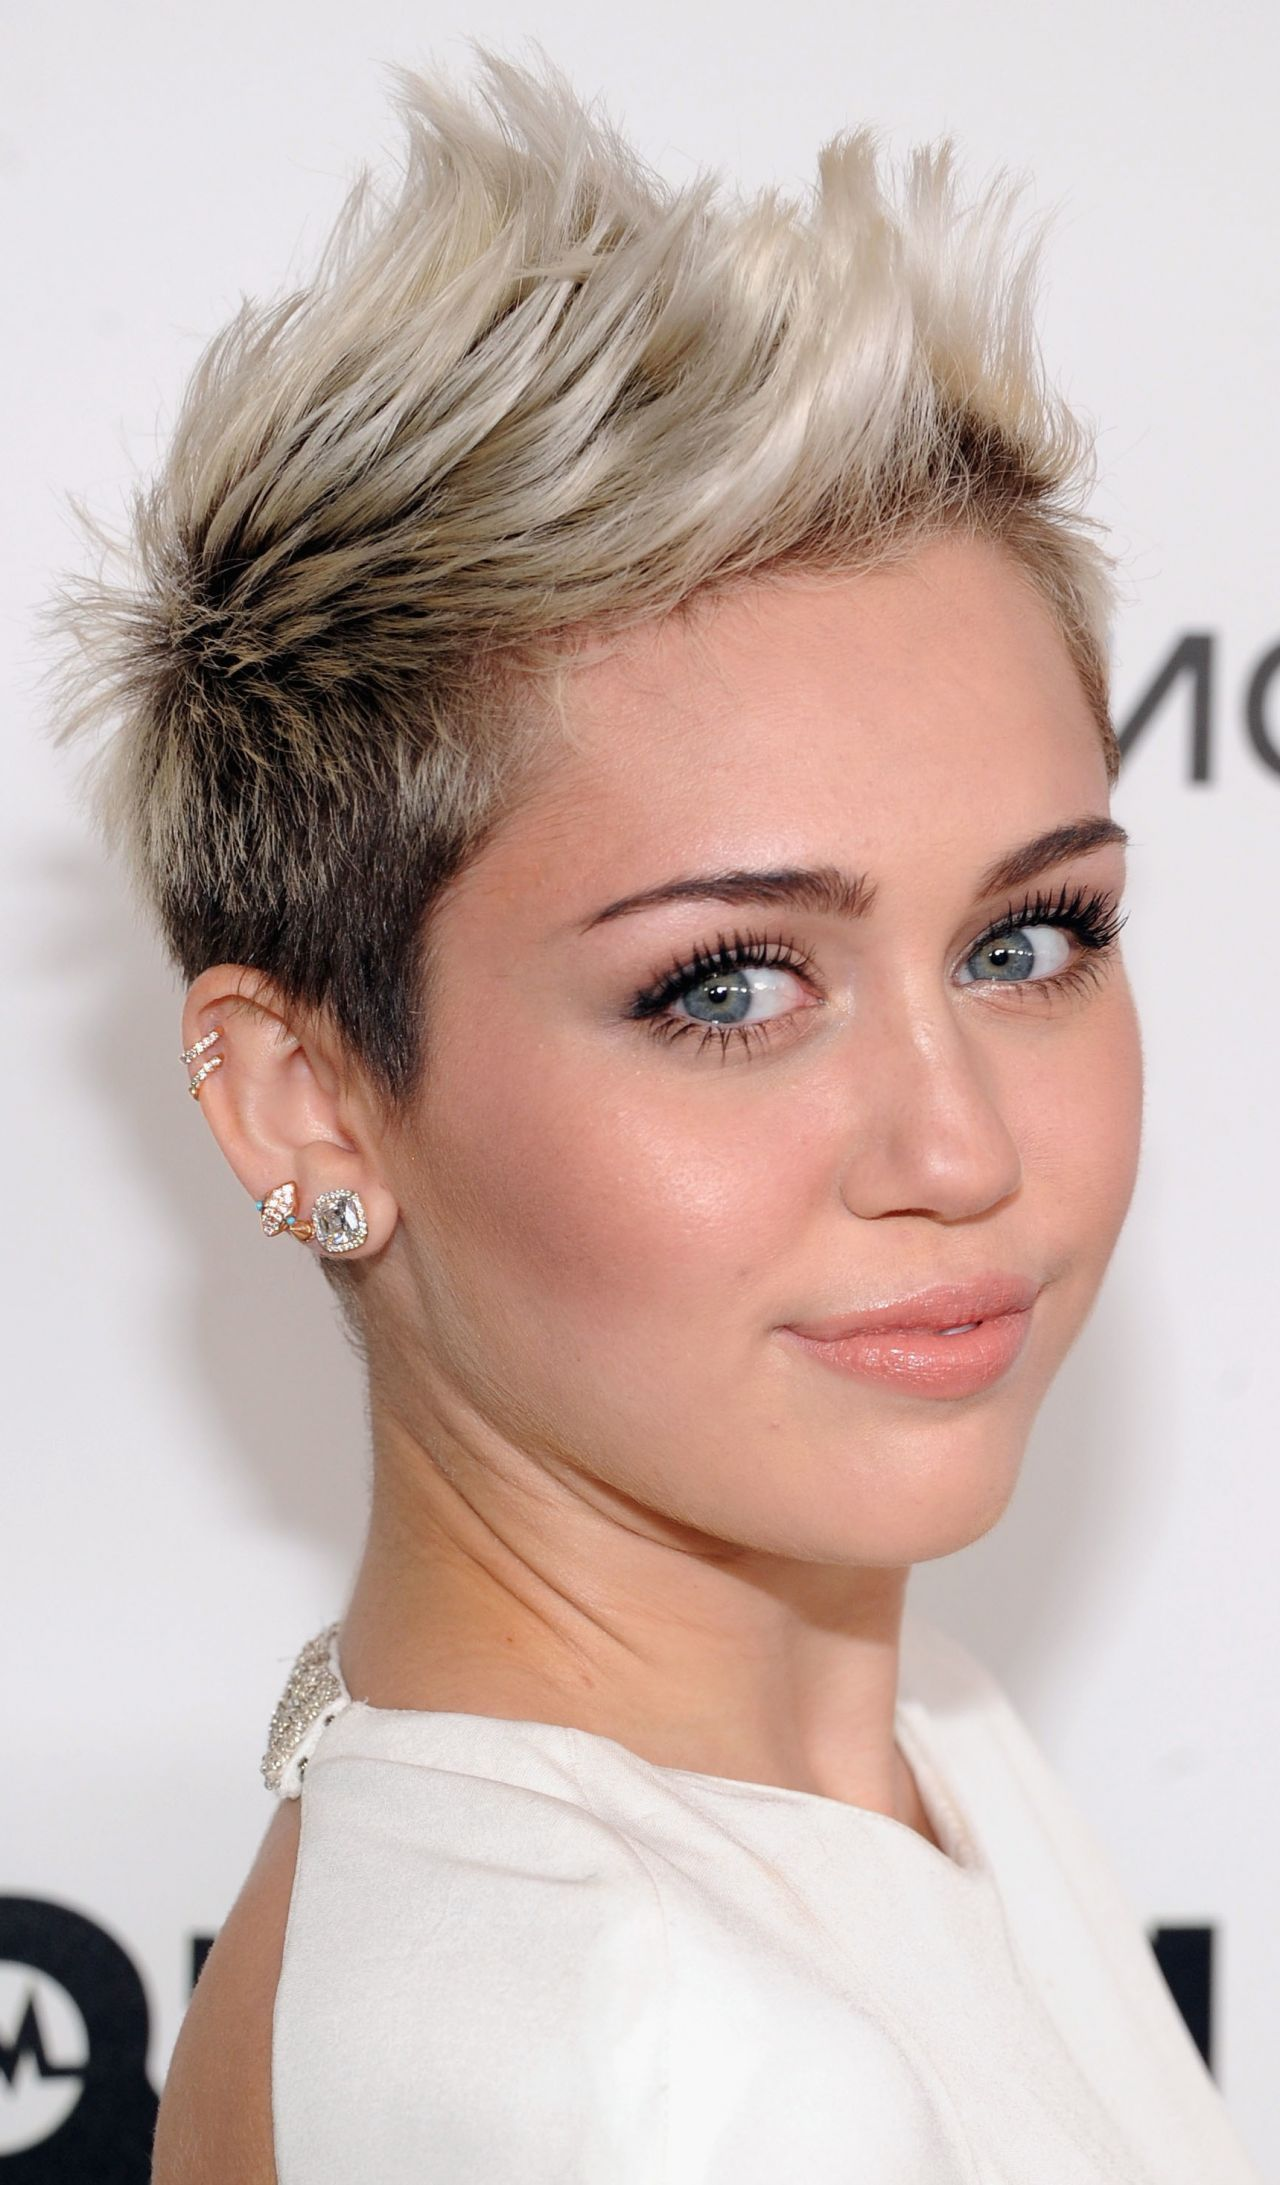 Medium Frisuren Die Miley Cyrus Ideen Medium Frisuren Die Miley